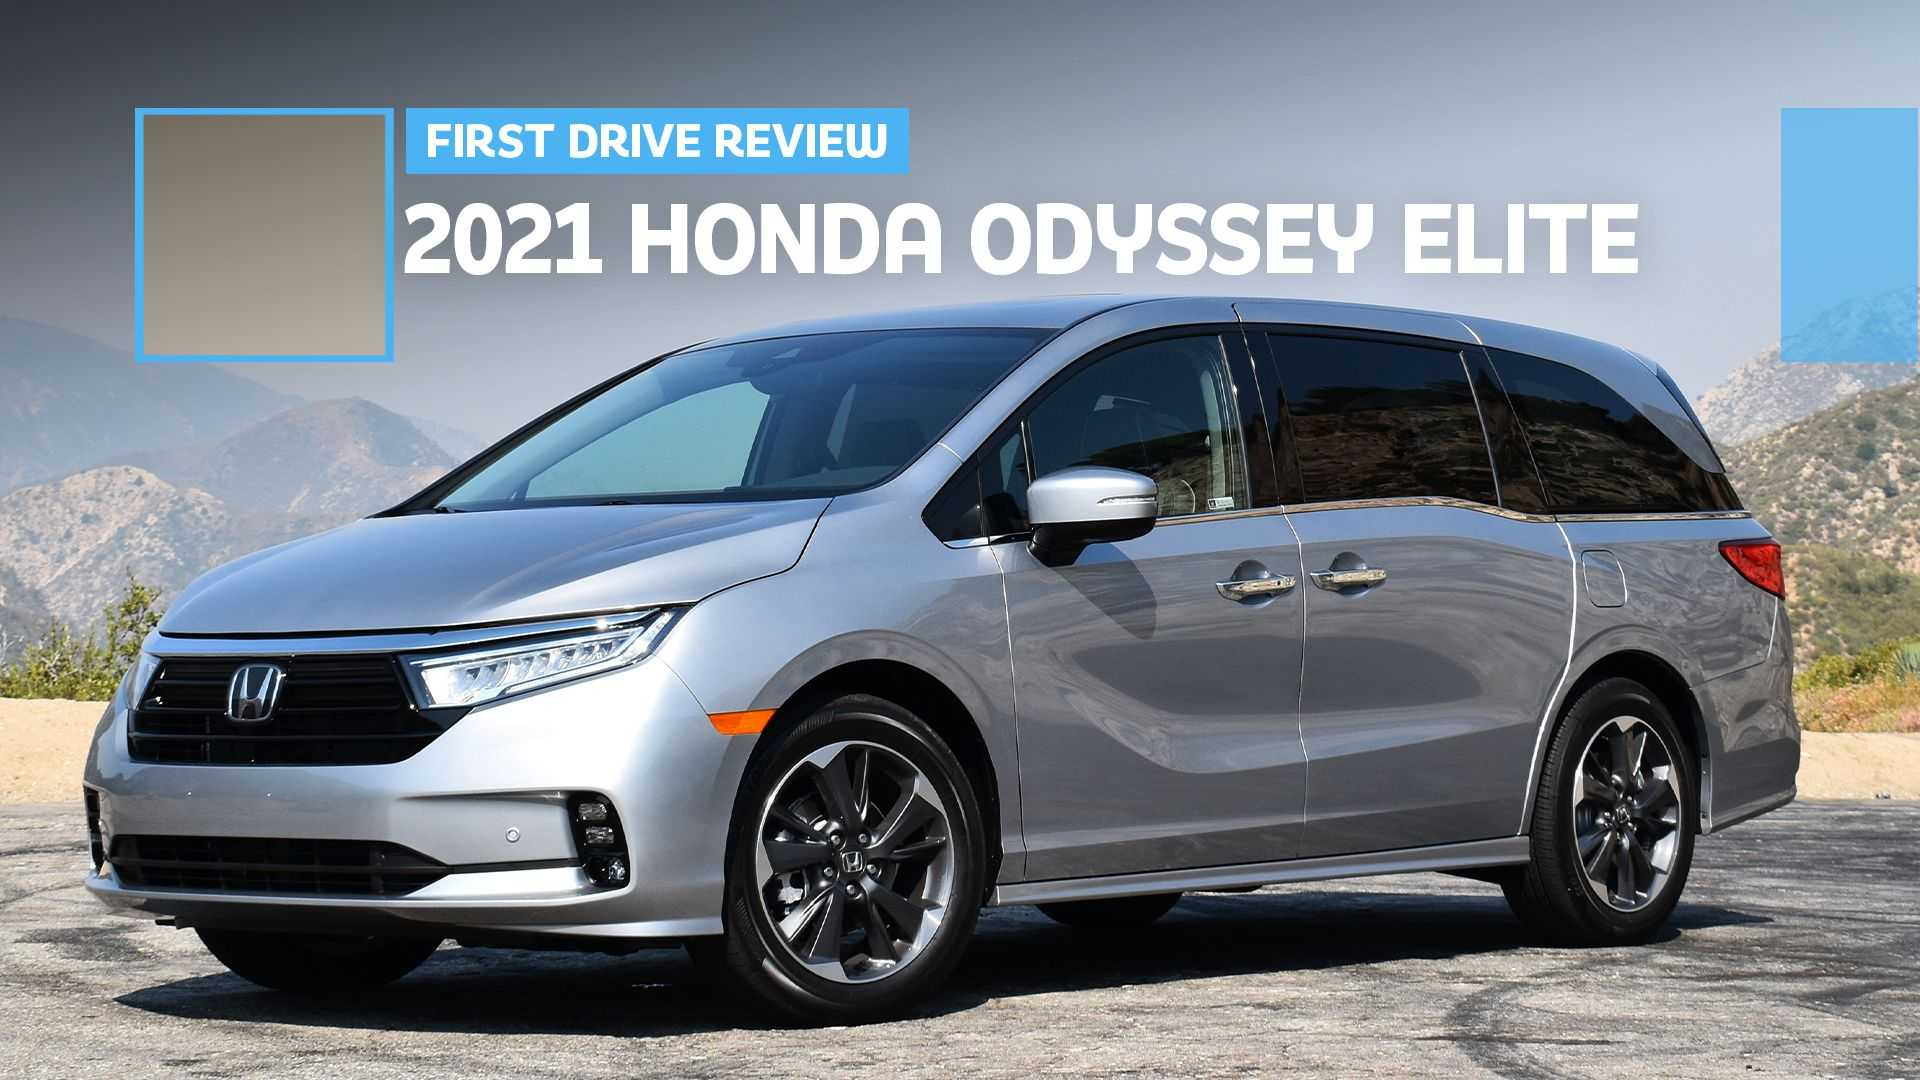 2021 Honda Odyssey First Drive Review: The Future Looks Good